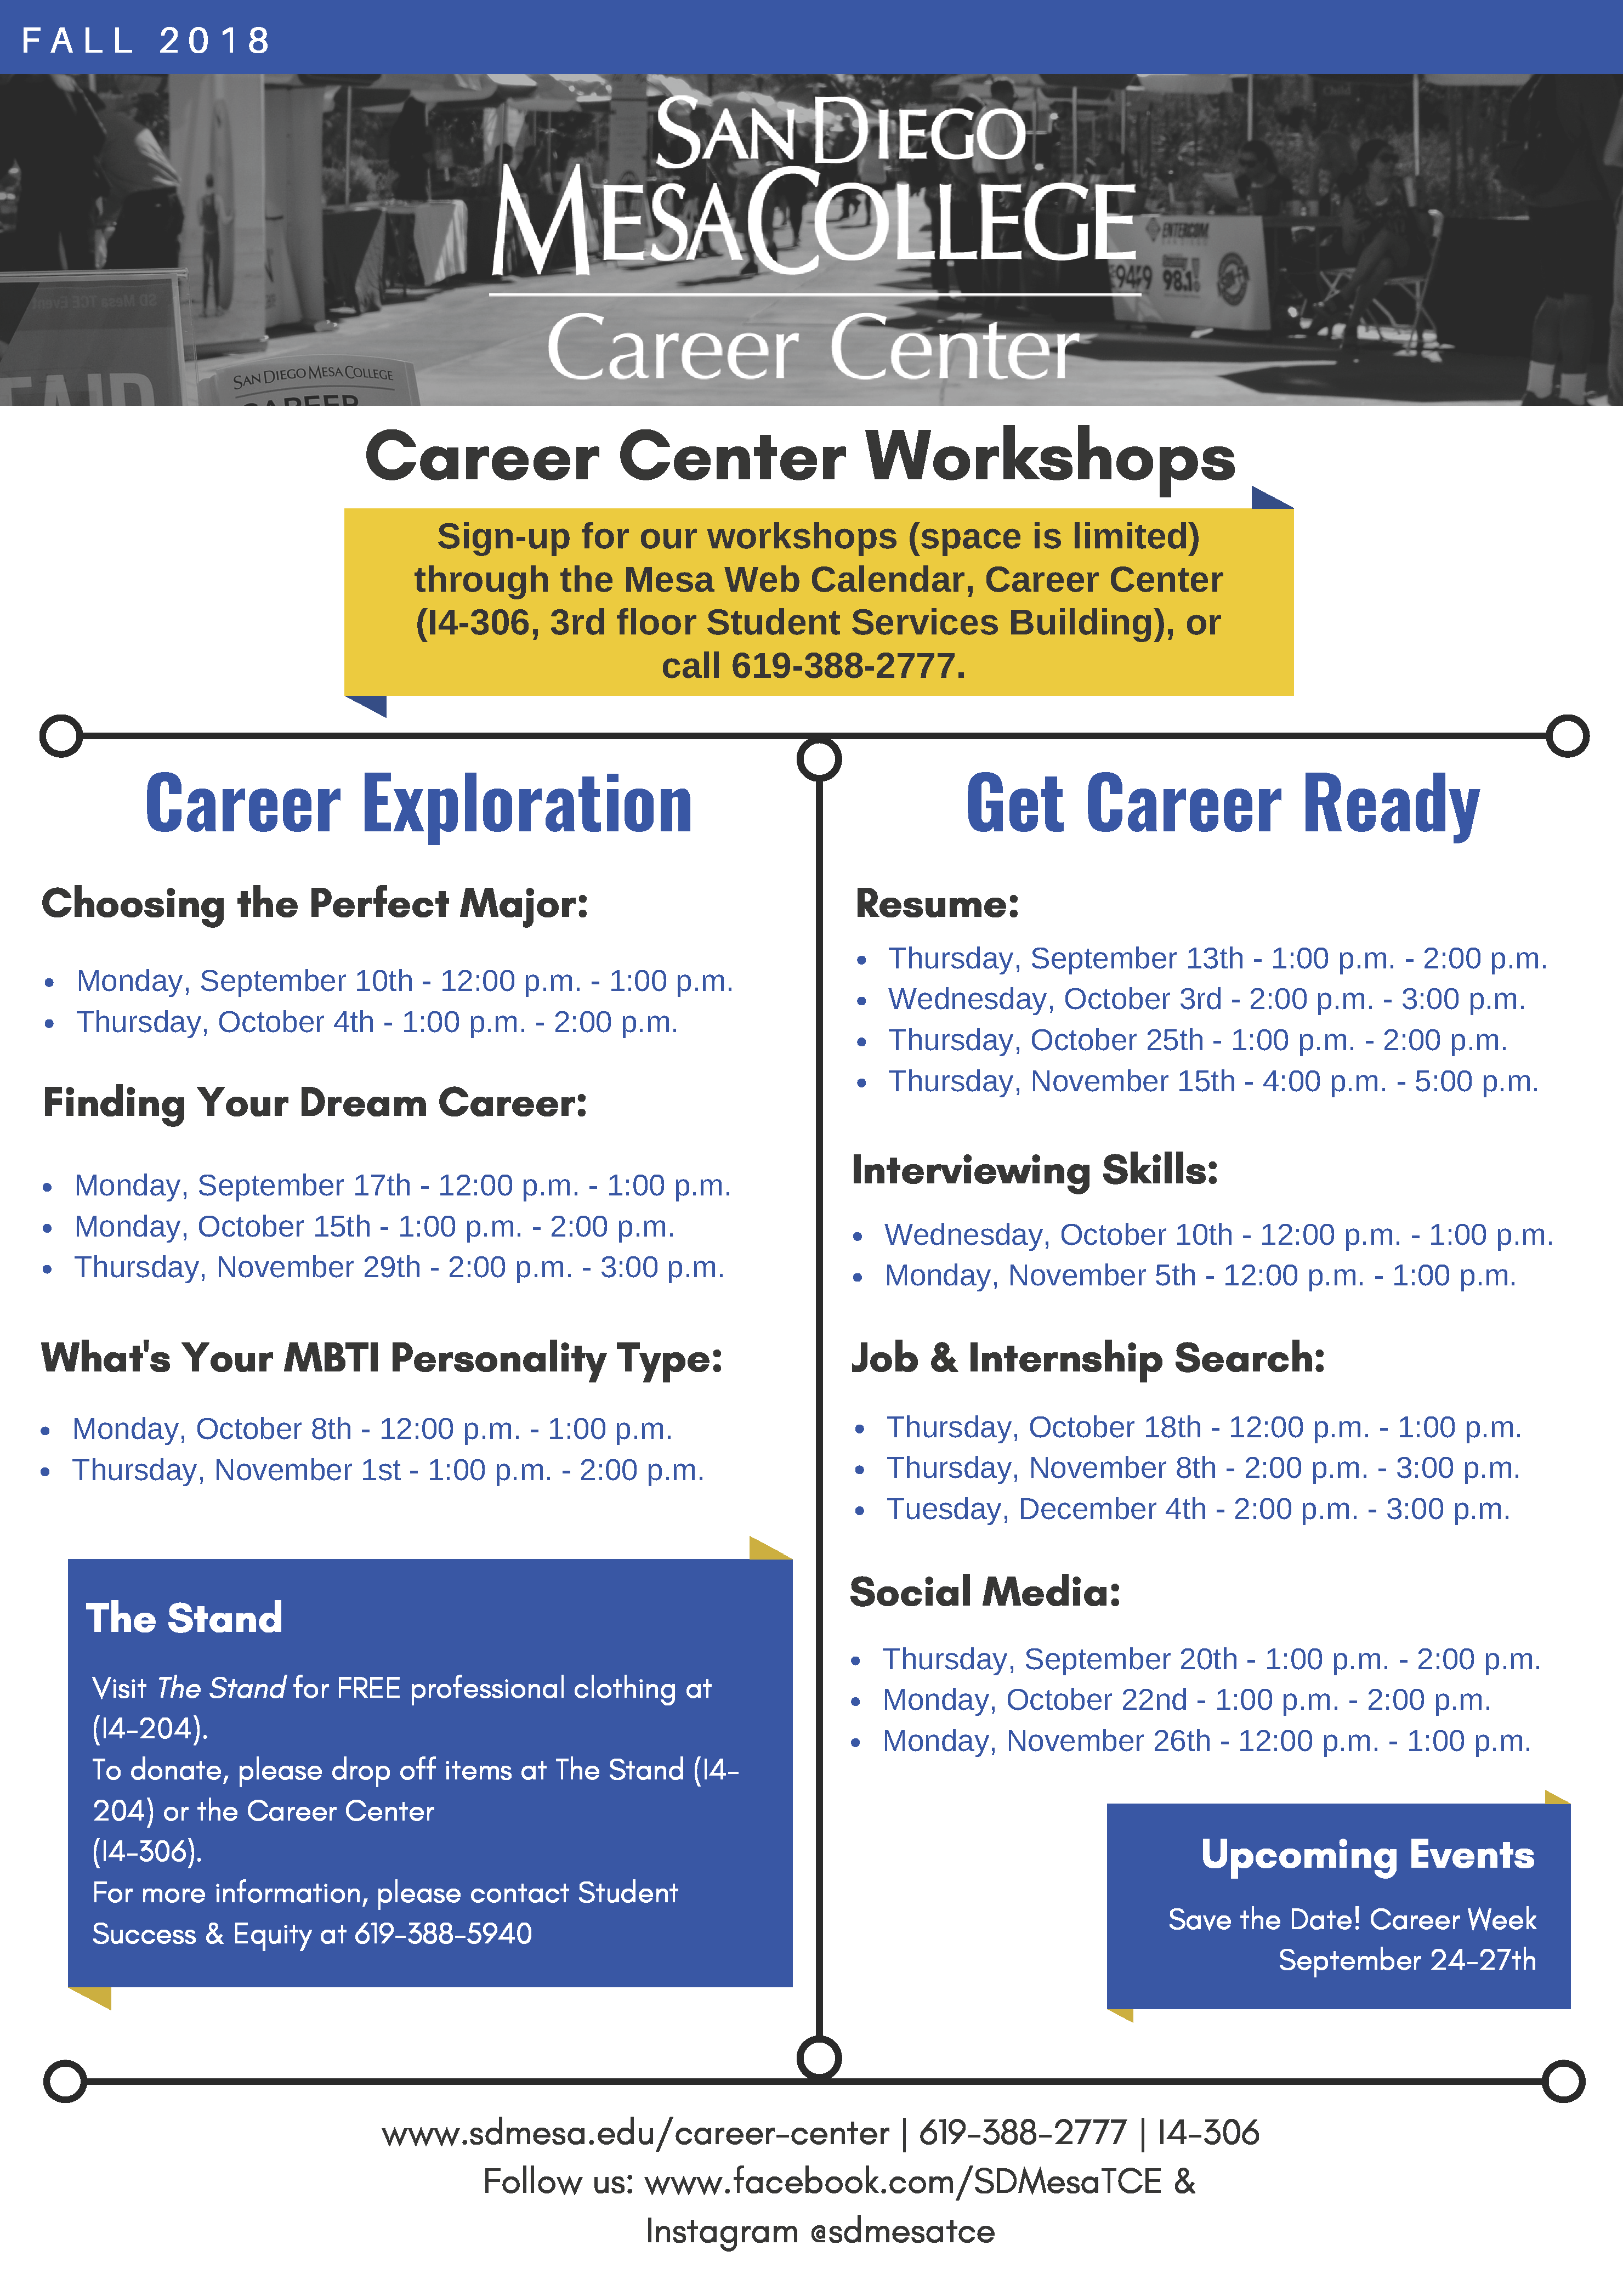 Career Center Events